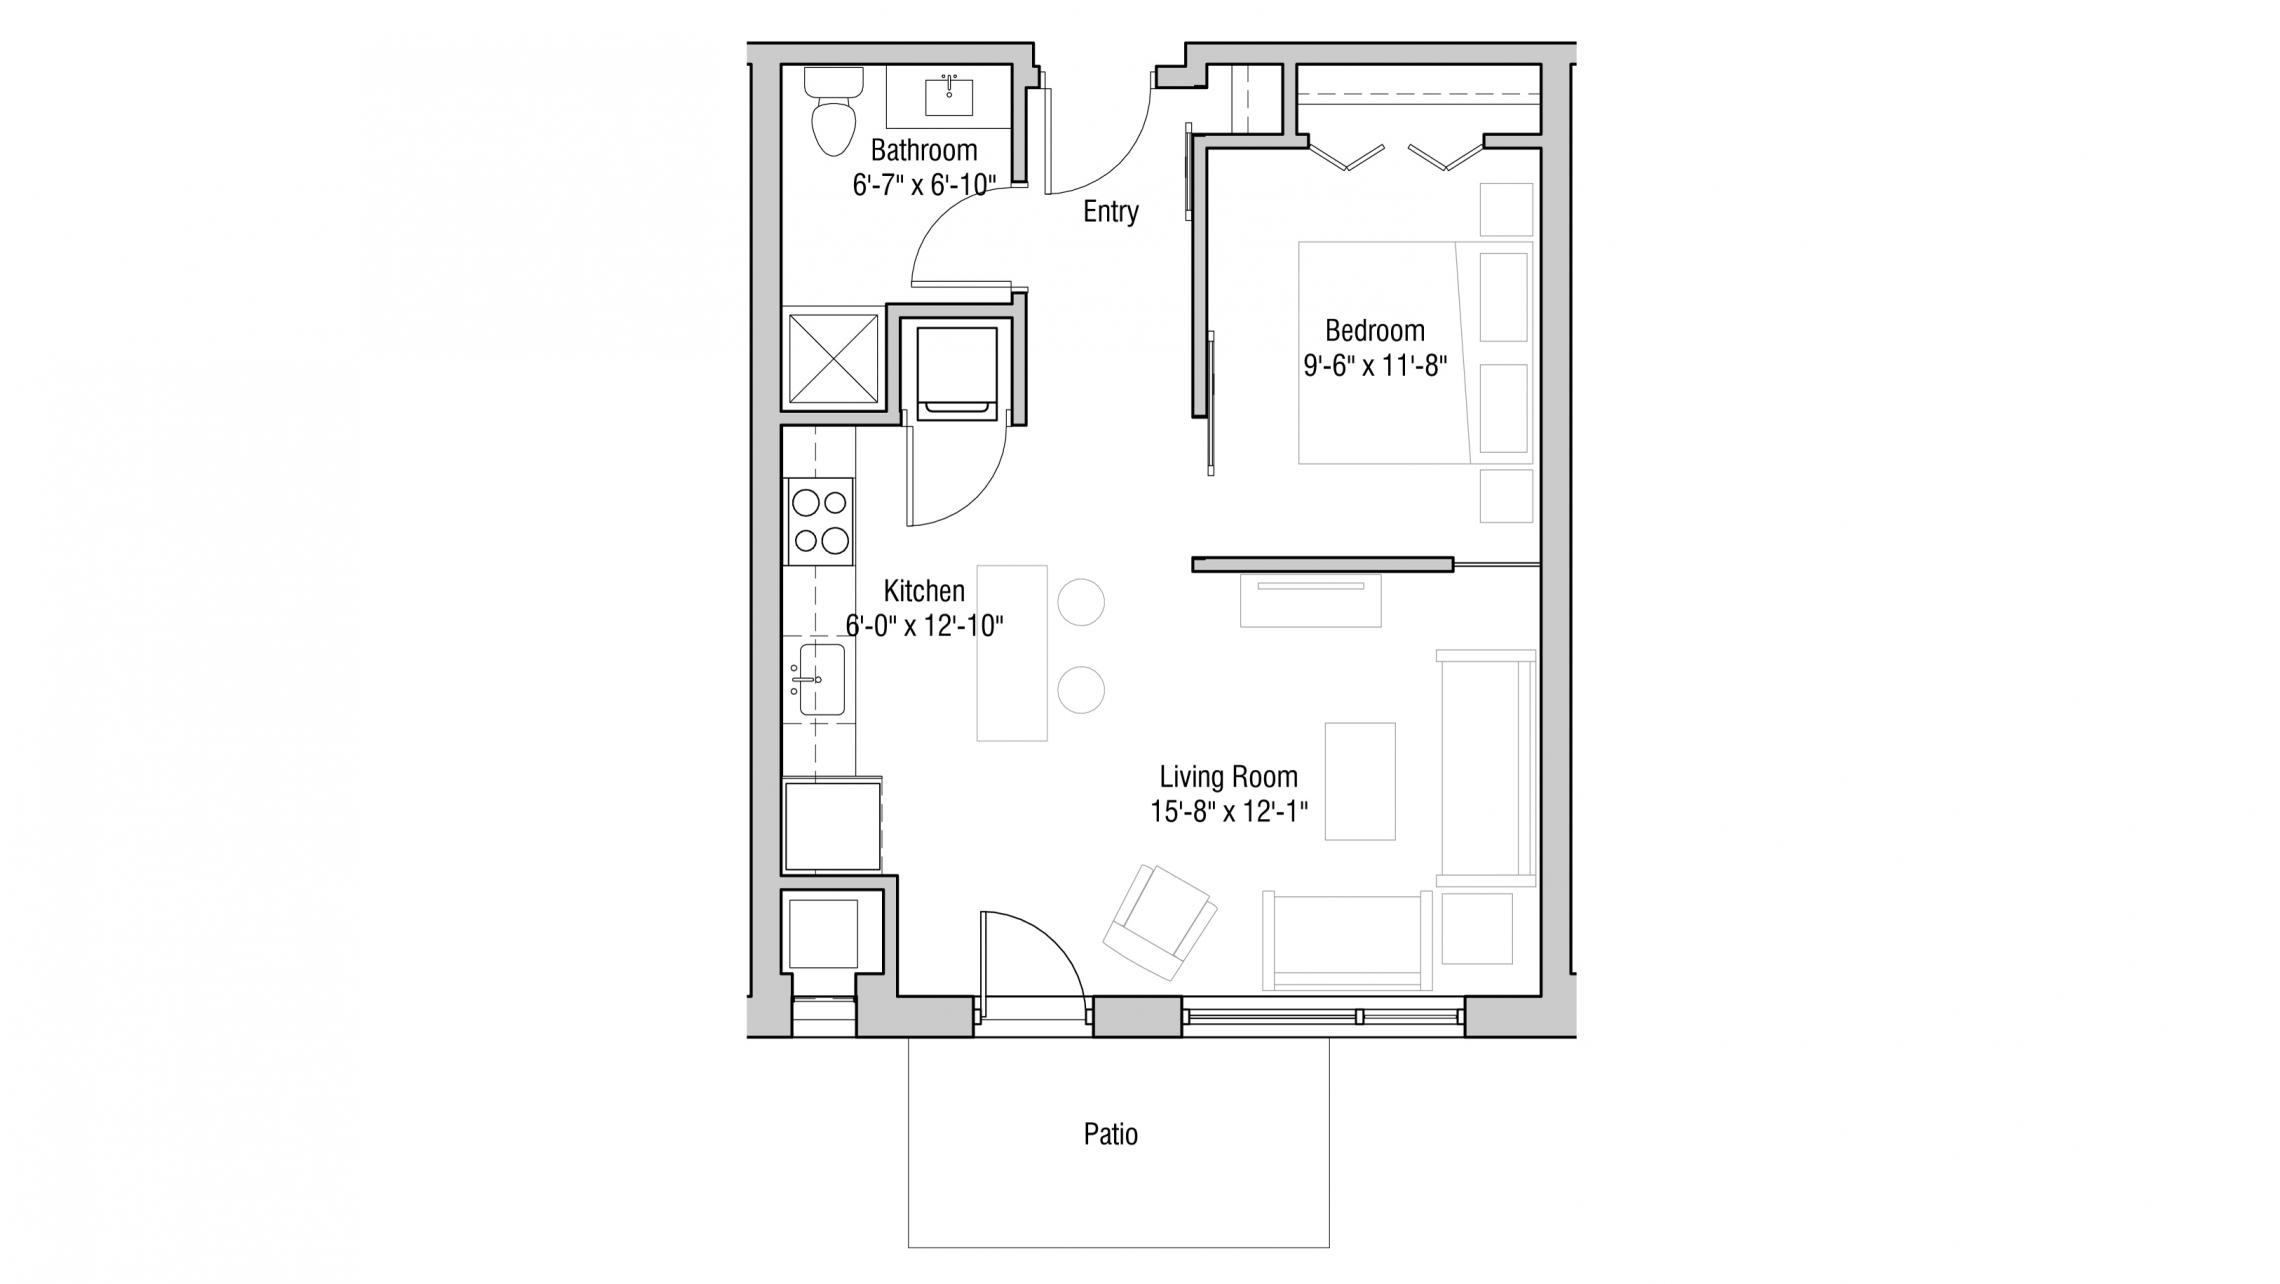 ULI Quarter Row 108 - One Bedroom, One Bathroom